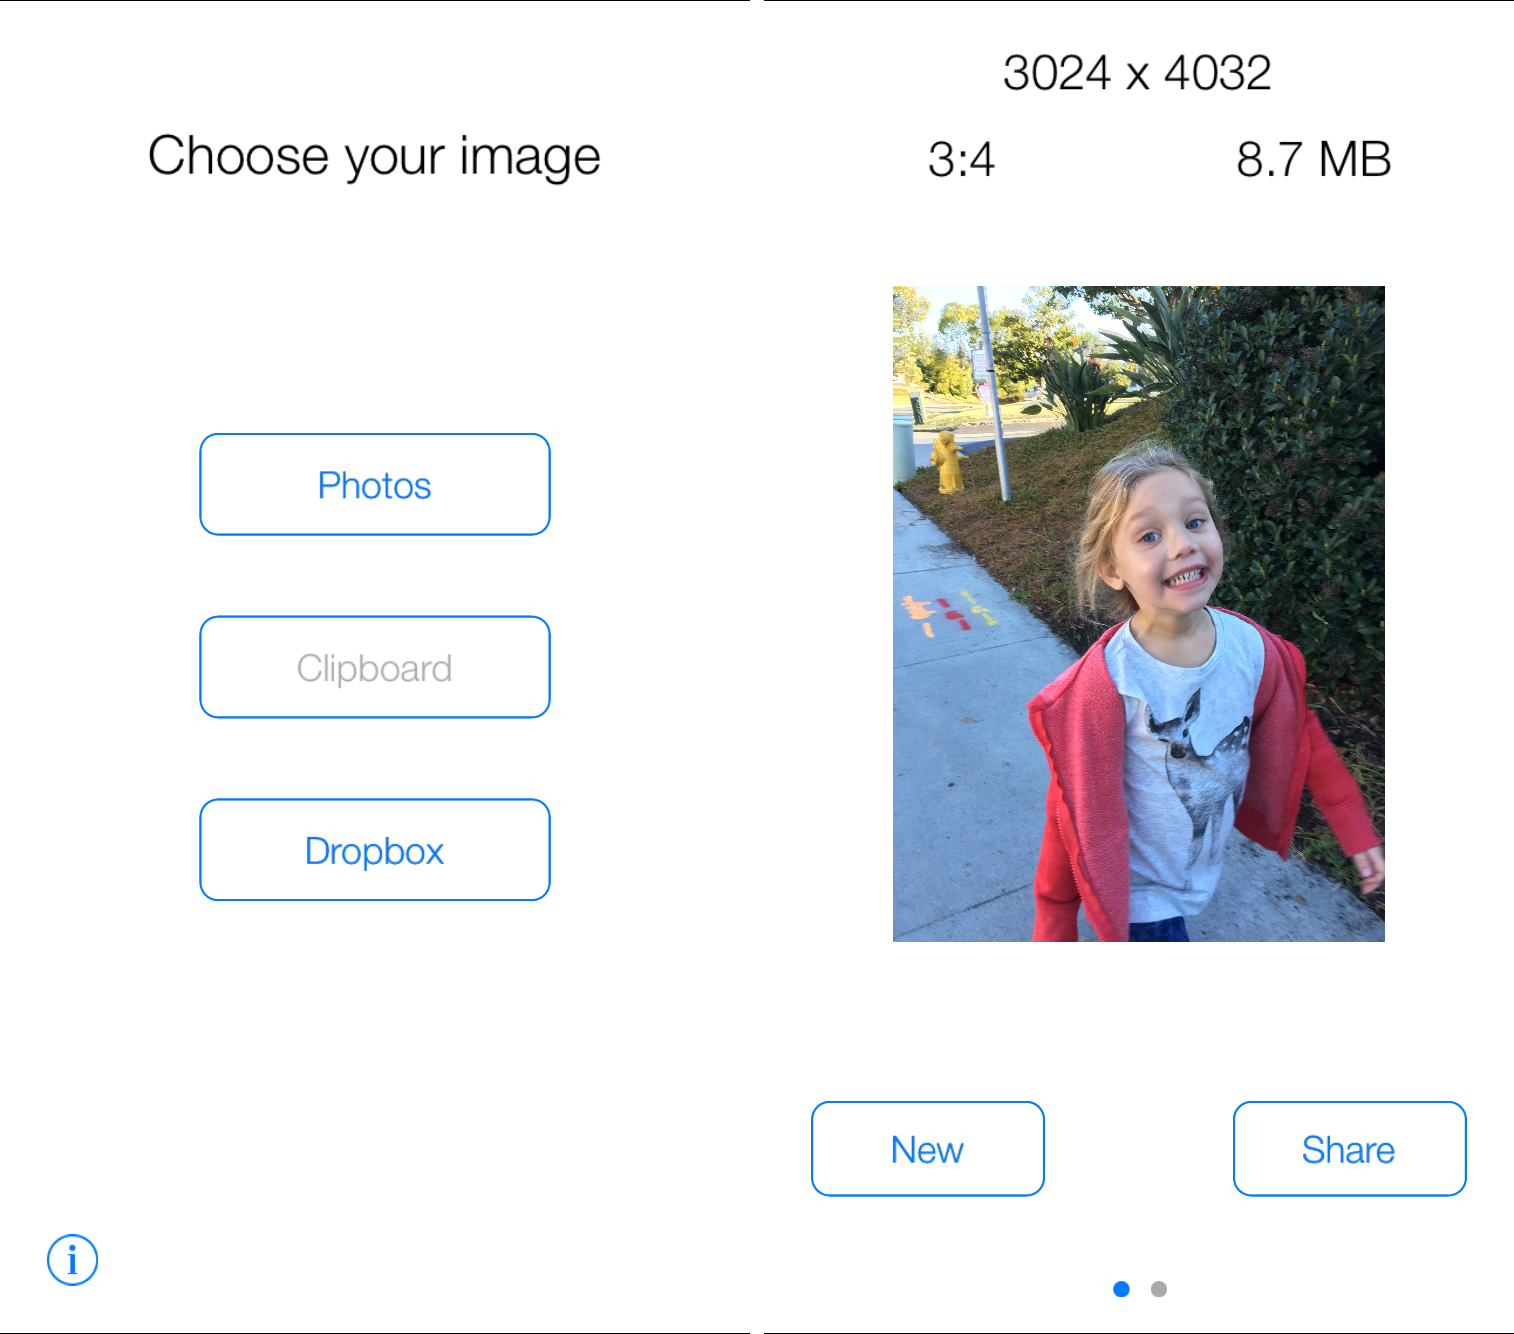 how to resize image on iPhone